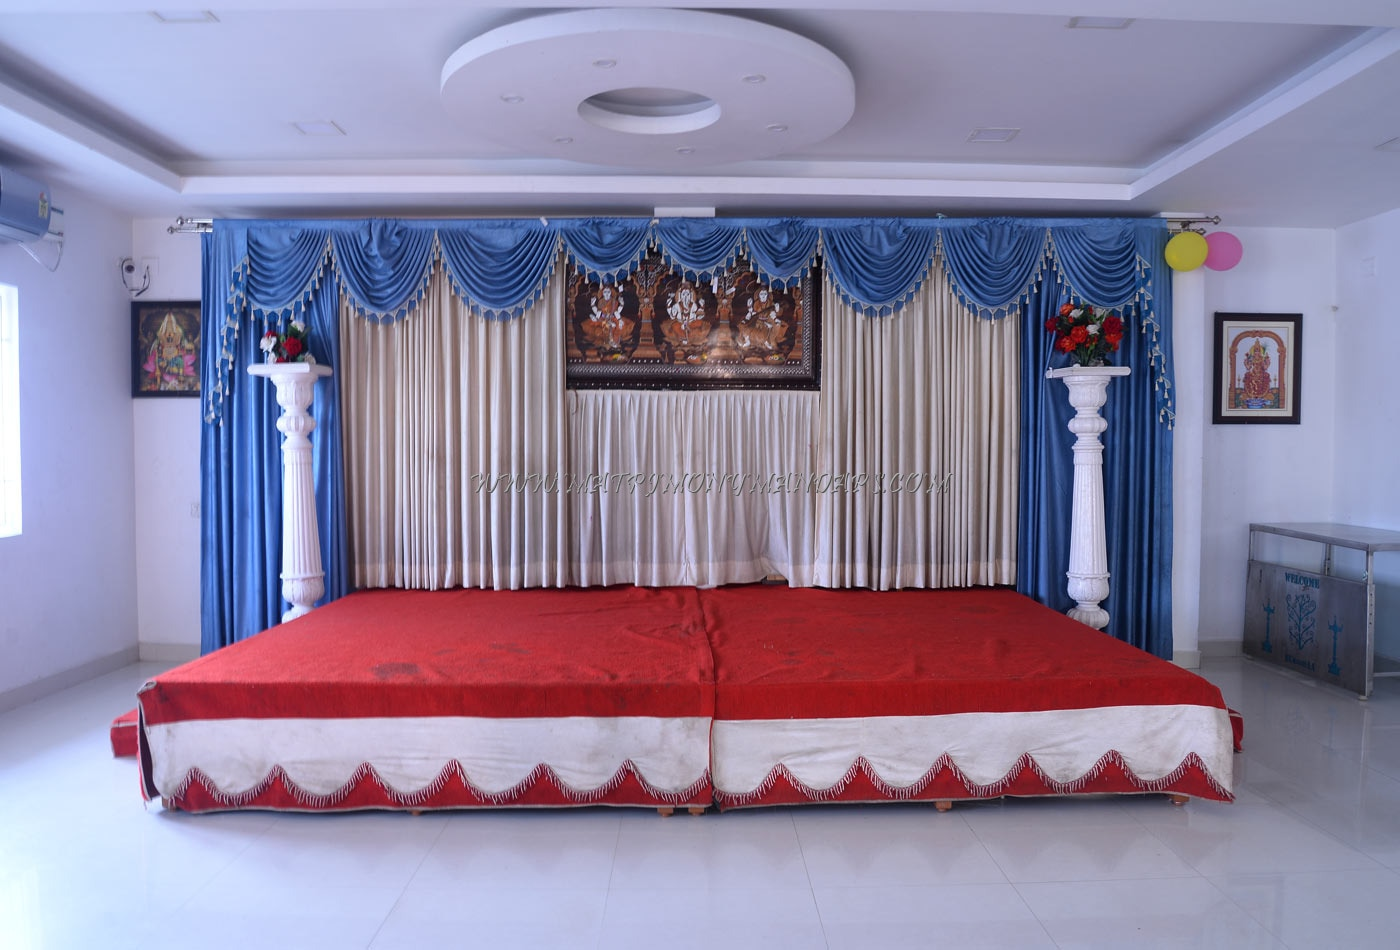 Find the availability of the Subikshaa Function Hall  (A/C) in Valasaravakkam, Chennai and avail special offers